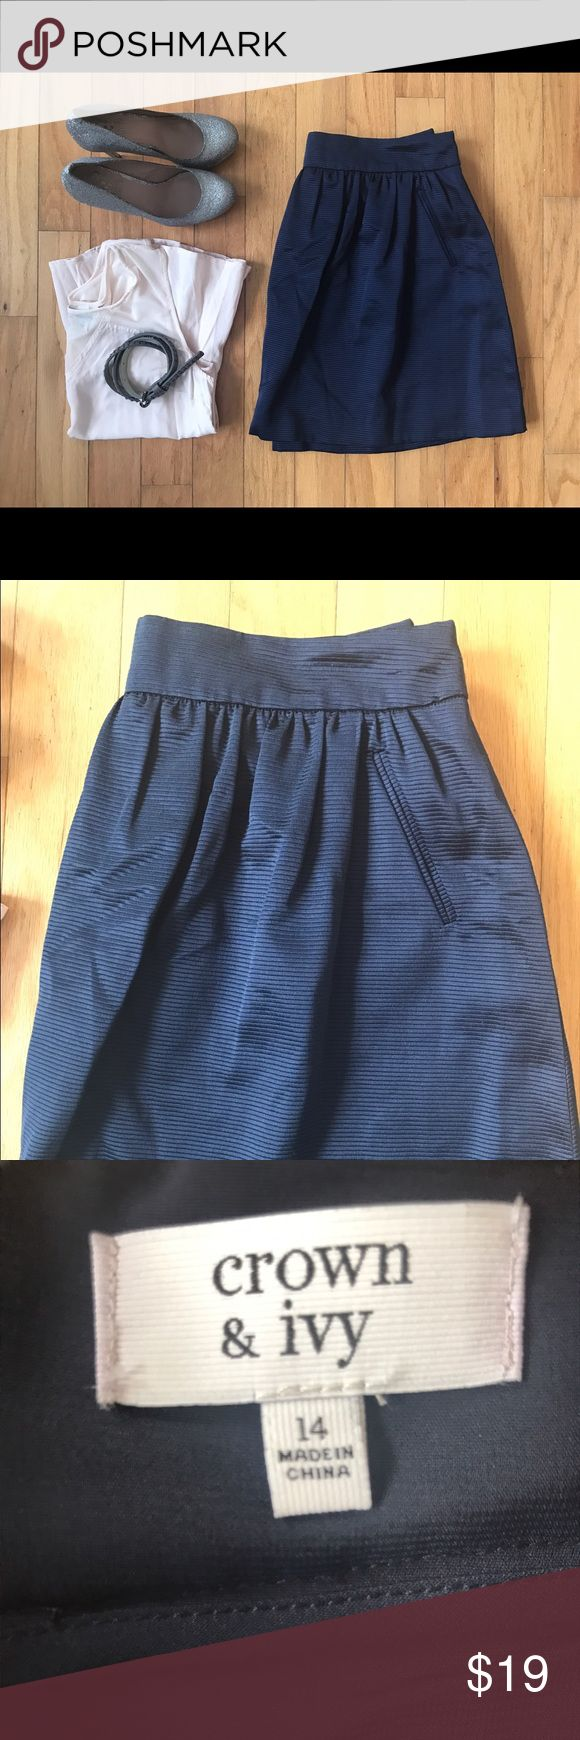 NWOT-Crown & Ivy Mini Skirt Size 14 Beautiful and feminine New Without Tags Crown & Ivy Midnight Blue Mini Bubble Skirt was originally $59.50. It's in excellent condition. Never worn. Only missing tags.   Features faux front pockets, zipper closure, and is fully lined. Material is textured with horizontal stripes and feels like thick silk. 56% Cotton, 44% Polyester.   Goes great with a plain tee & flats, or dressed up with a Blouse, heels & statement necklace!   Measurements taken lying…